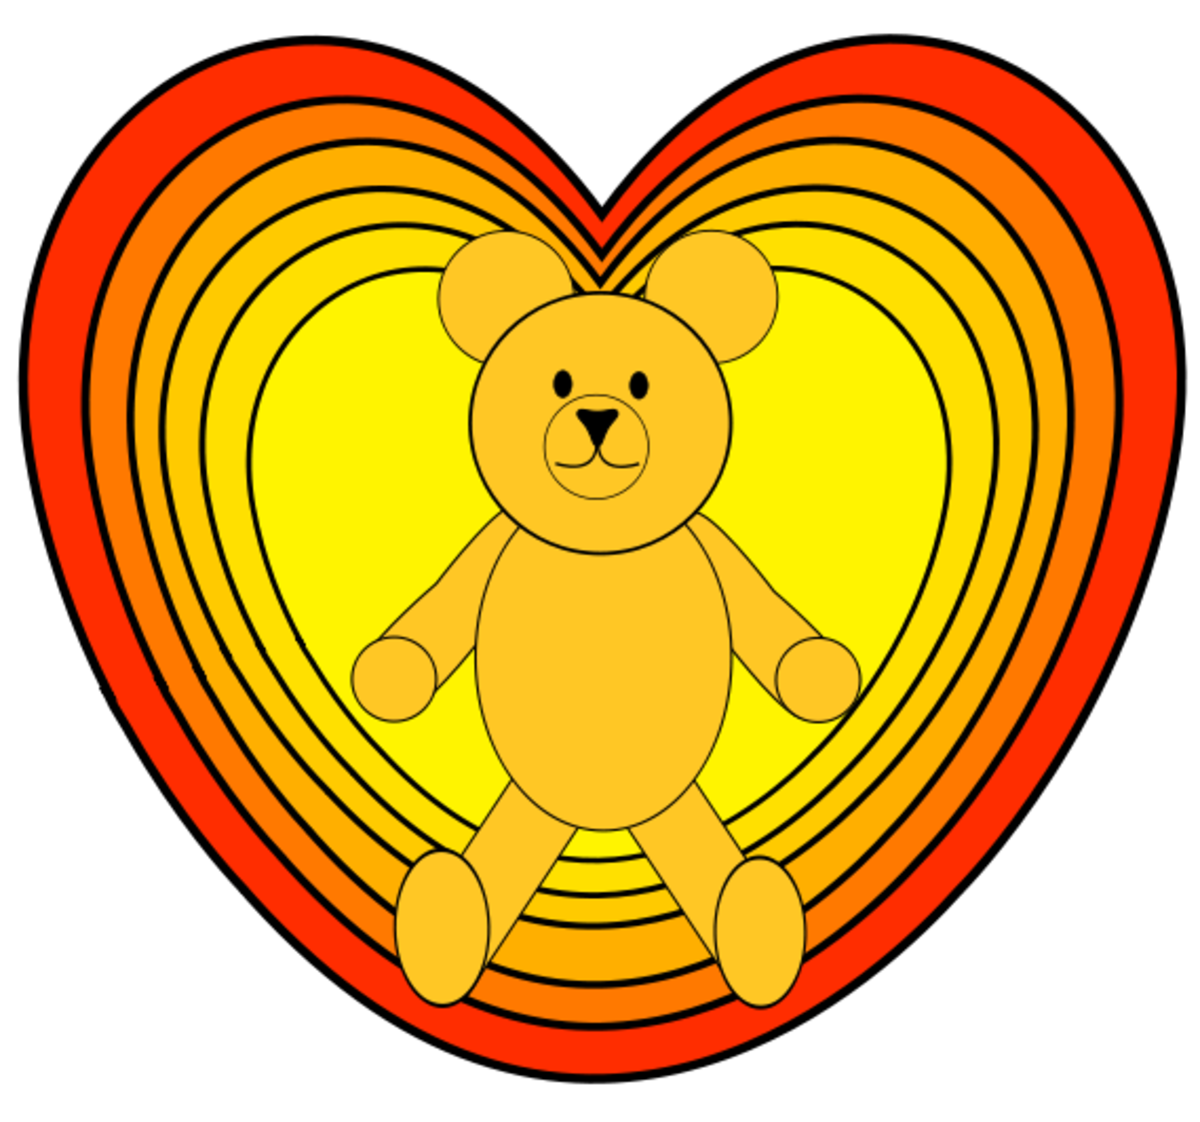 Teddy Bear inside Hearts Clip Art